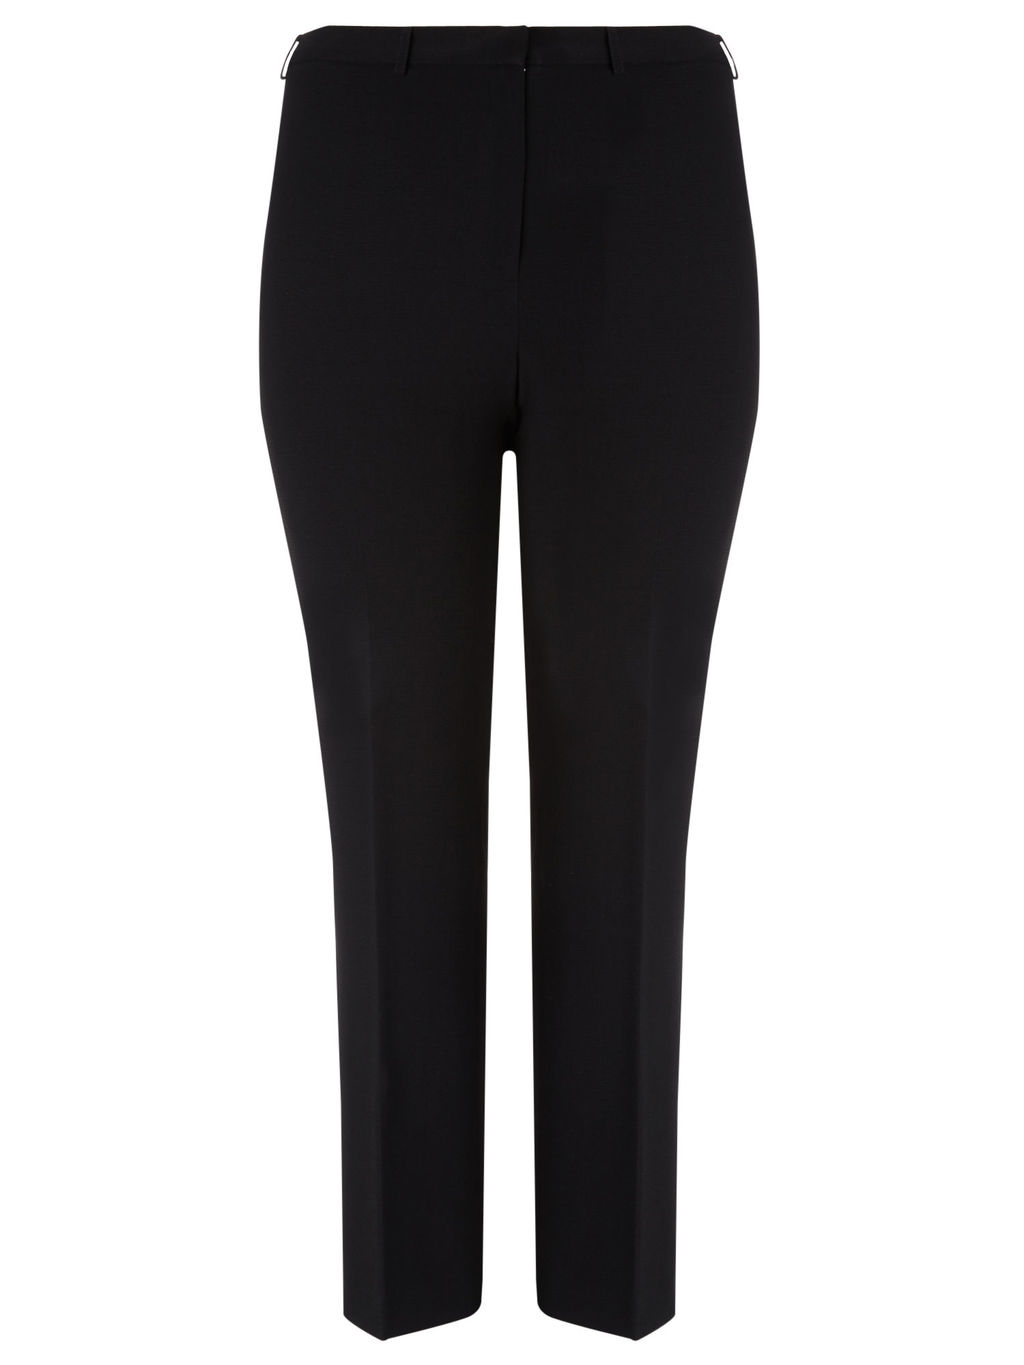 Black Tailored Texture Trouser - length: standard; pattern: plain; waist: mid/regular rise; predominant colour: black; occasions: casual, creative work; fibres: polyester/polyamide - 100%; fit: slim leg; pattern type: fabric; texture group: woven light midweight; style: standard; season: a/w 2015